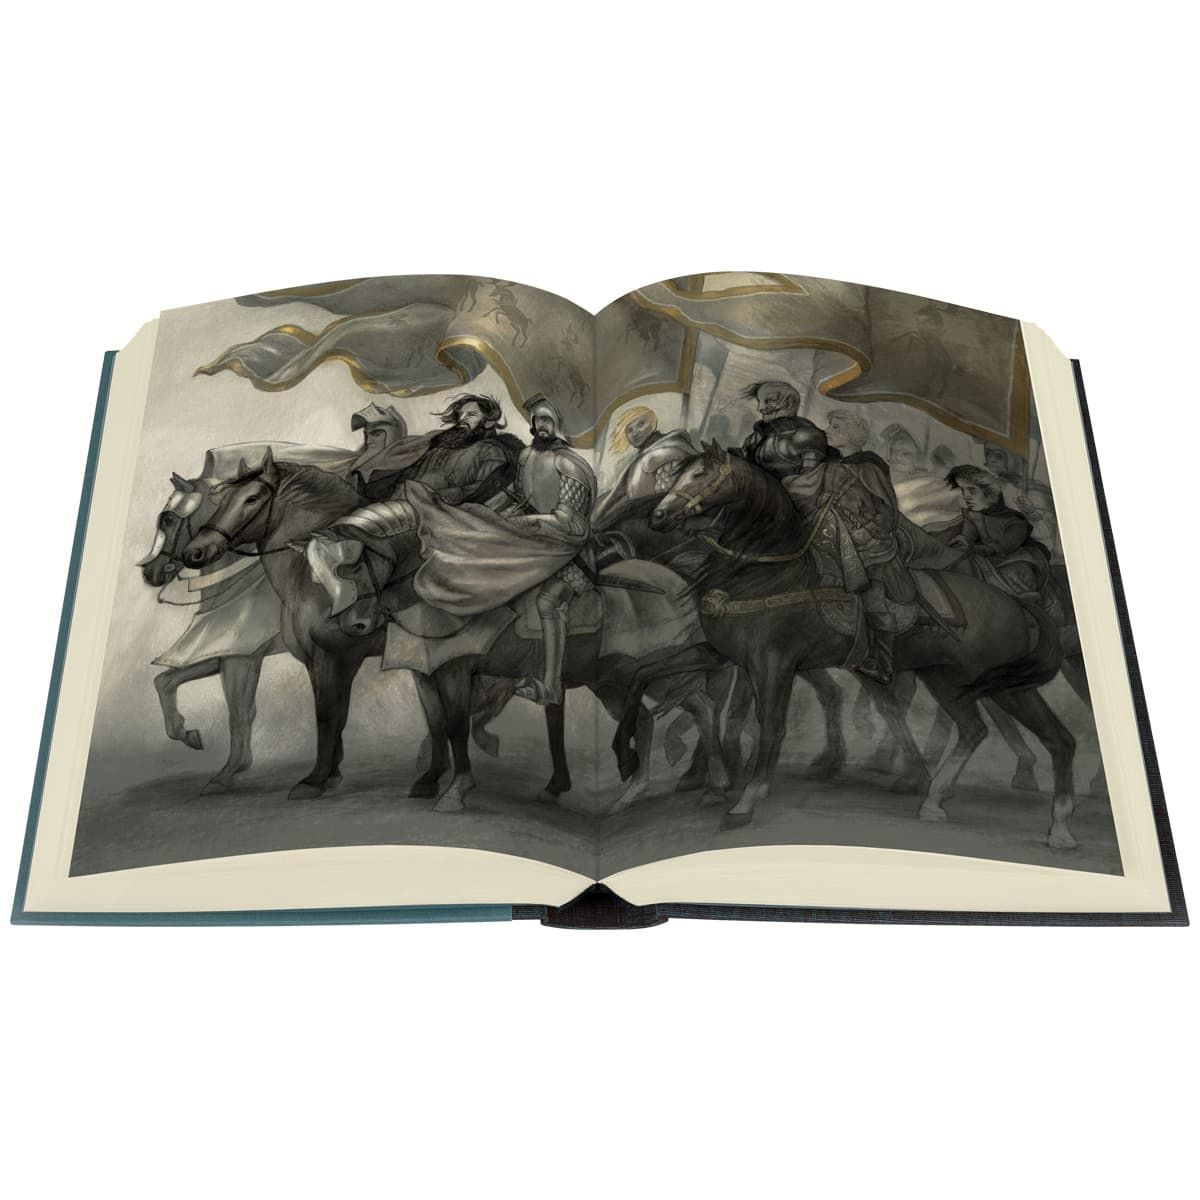 <p>Award-winning illustrator Jonathan Burton's glorious colour illustrations take the reader deeper into the realms of Westeros than ever before. Lavish binding designs are blocked with striking images of wolves, stags and lions, against shimmering gold and silver landscapes. (Photo: The Folio Society)<br></p><p></p>